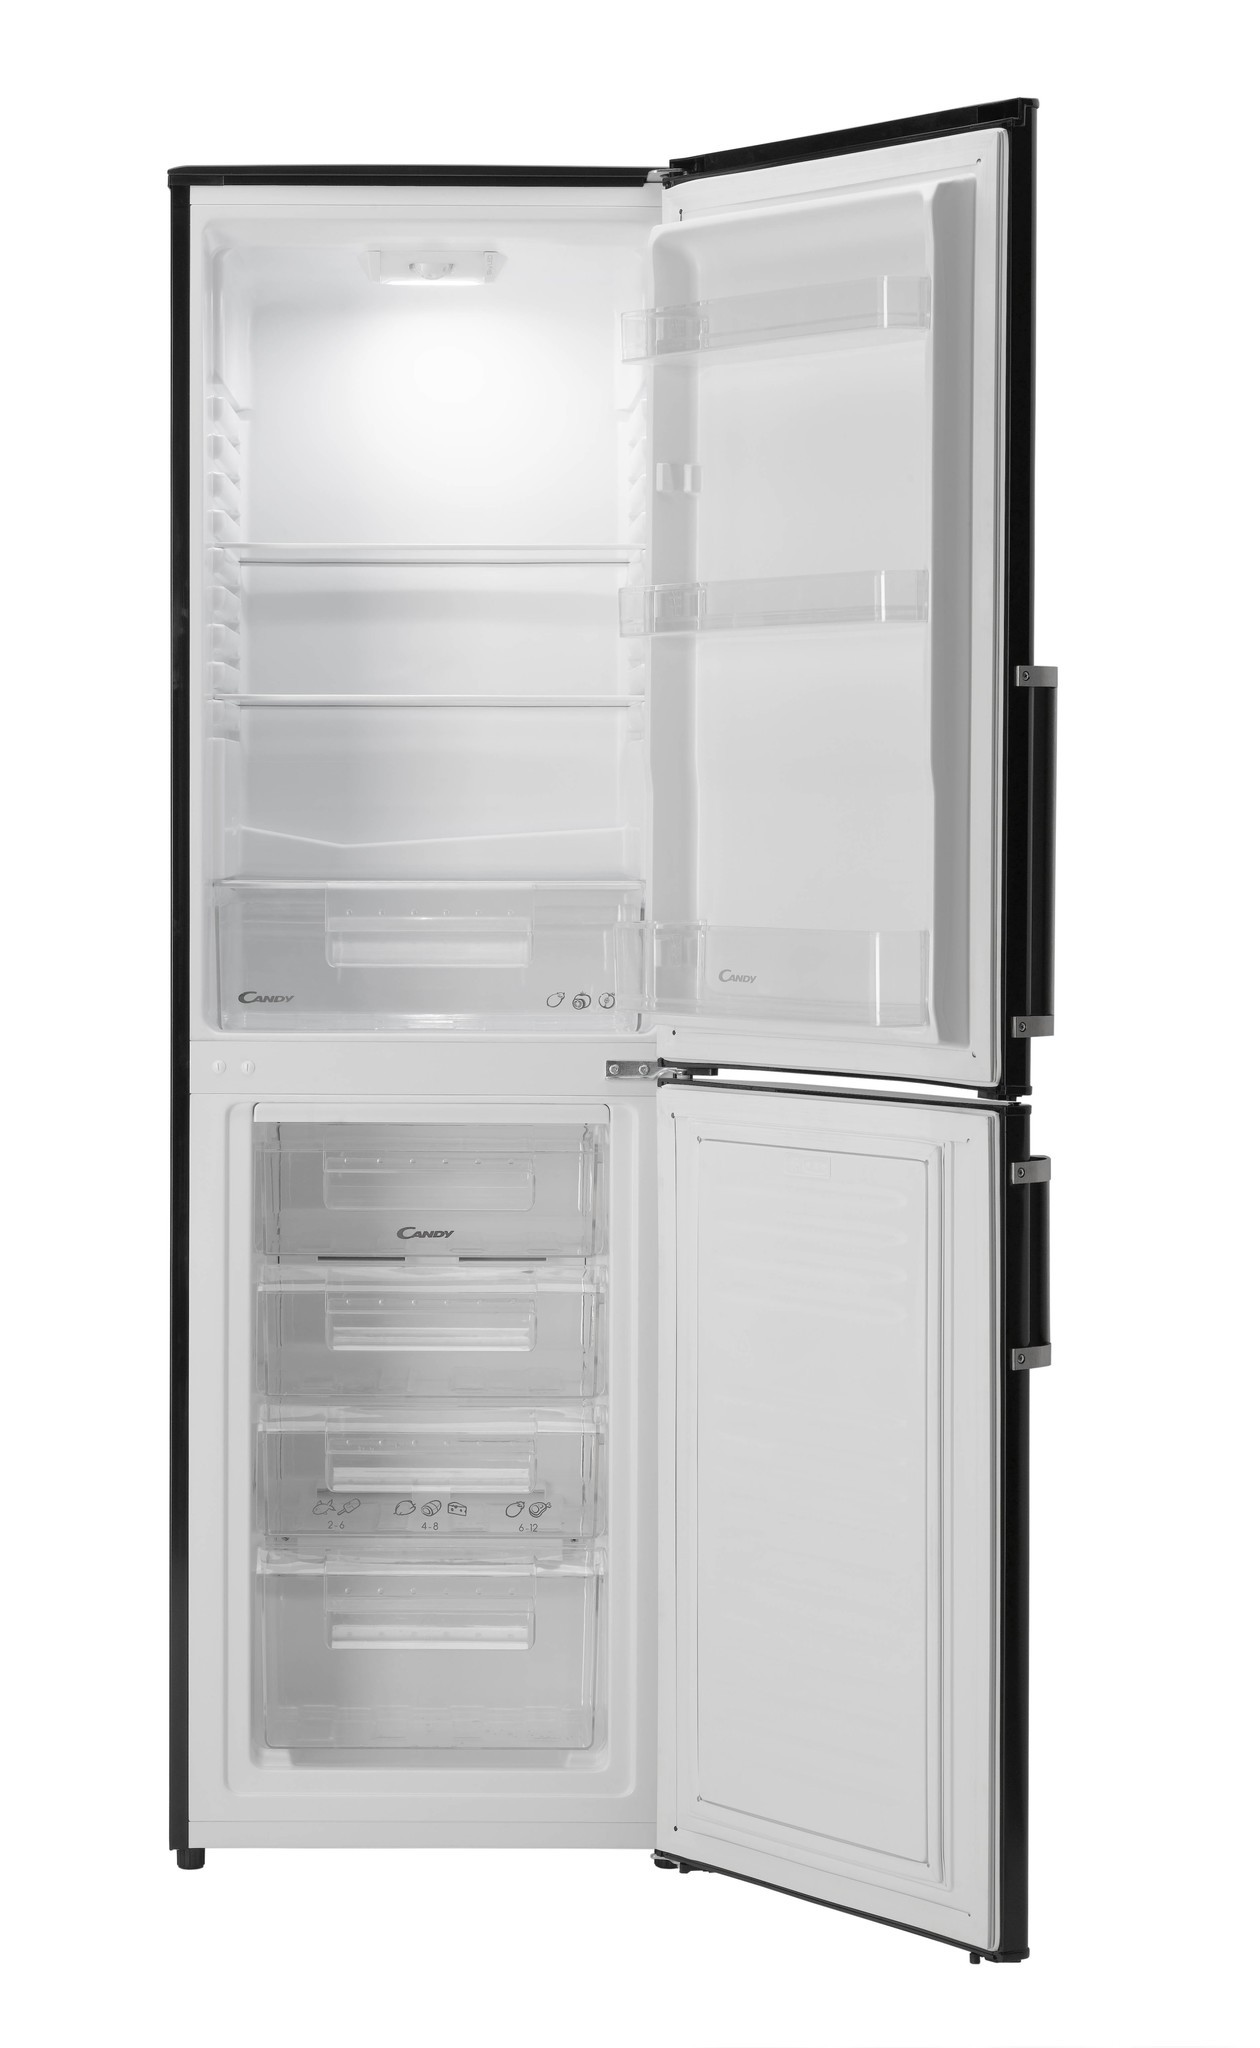 Candy CCBF5172BHK Fridge Freezer